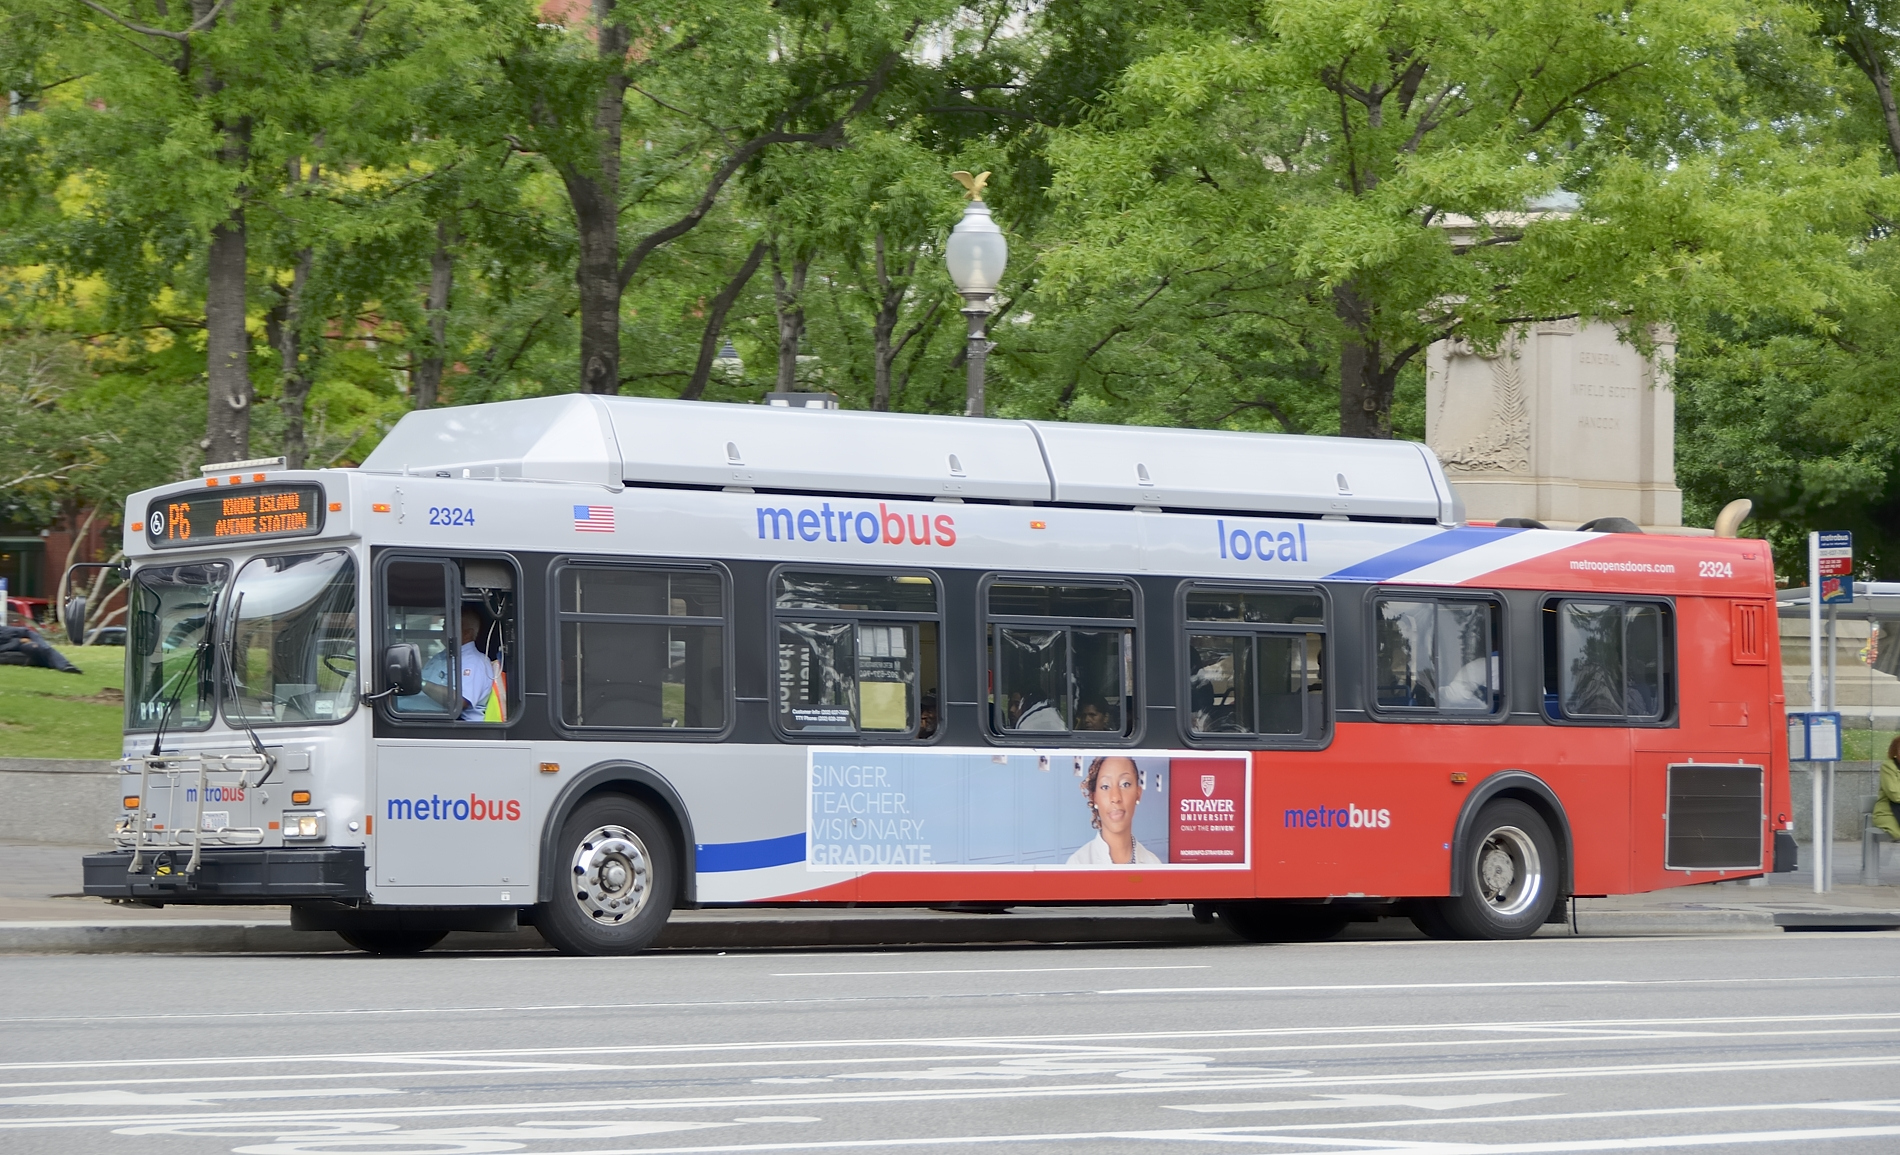 Catholic Church Sues DC Transit System for Rejecting Its Christmas Ad